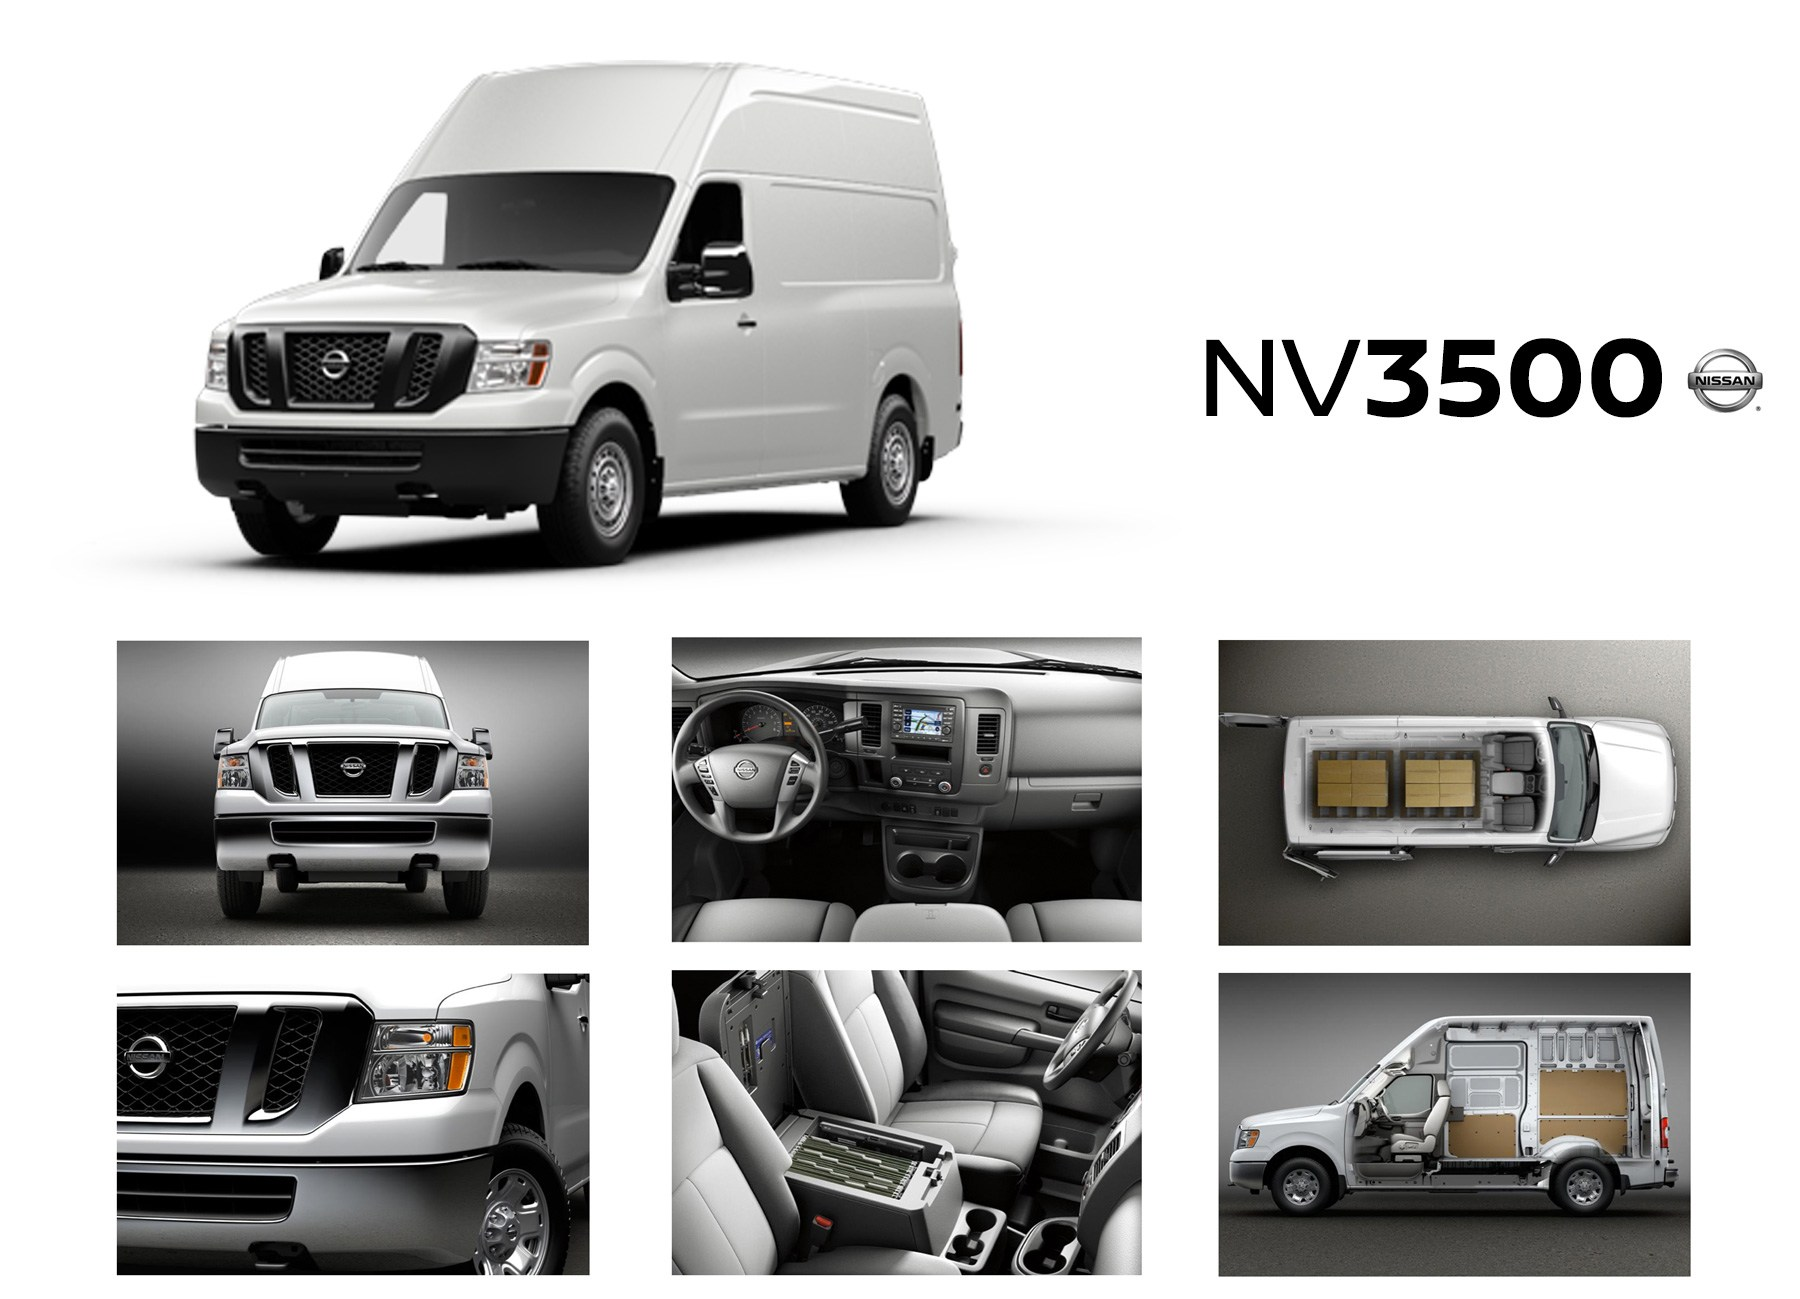 hight resolution of nissan nv 3500